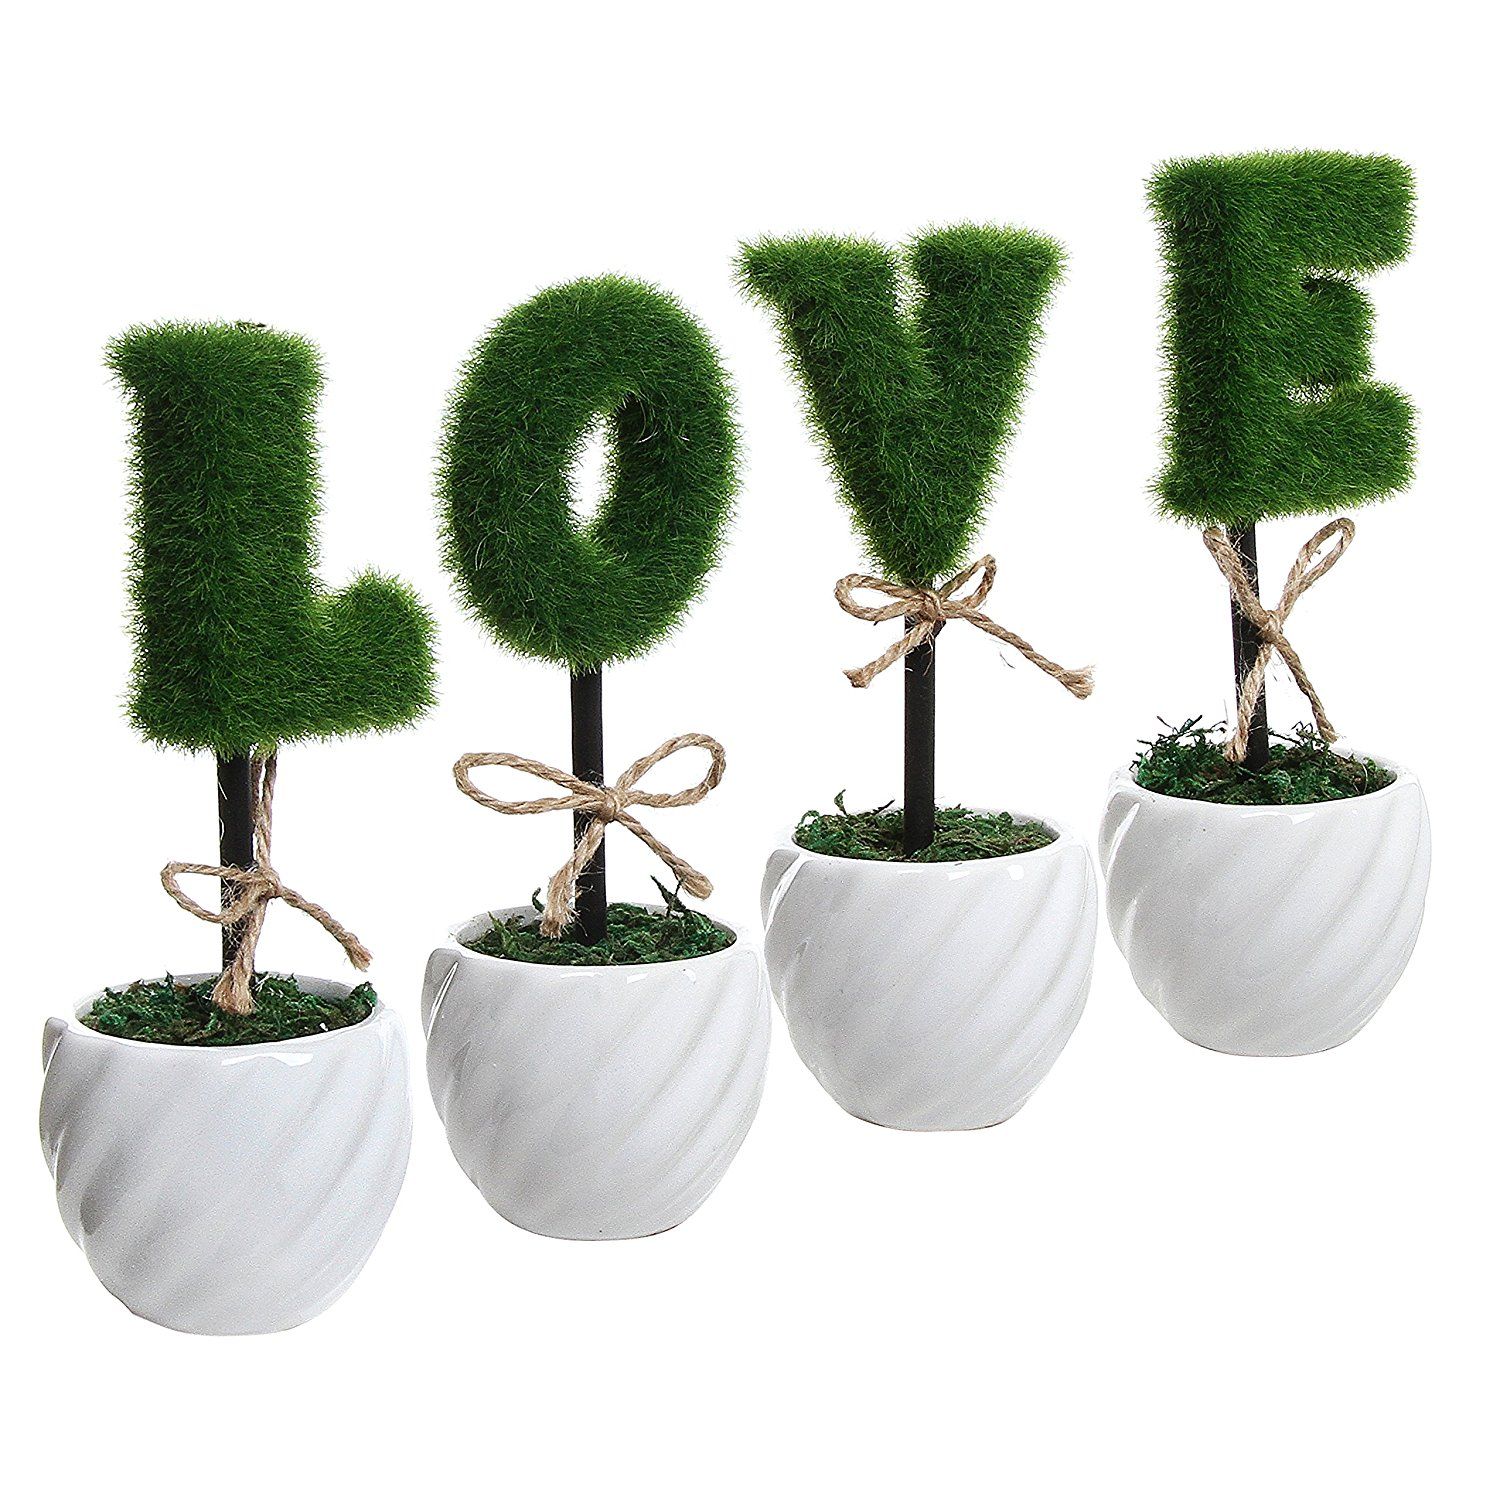 New LOVE Decoration White Ceramic Green Hedge Artificial Plant Set / Set of 4 Fake Plant Letters